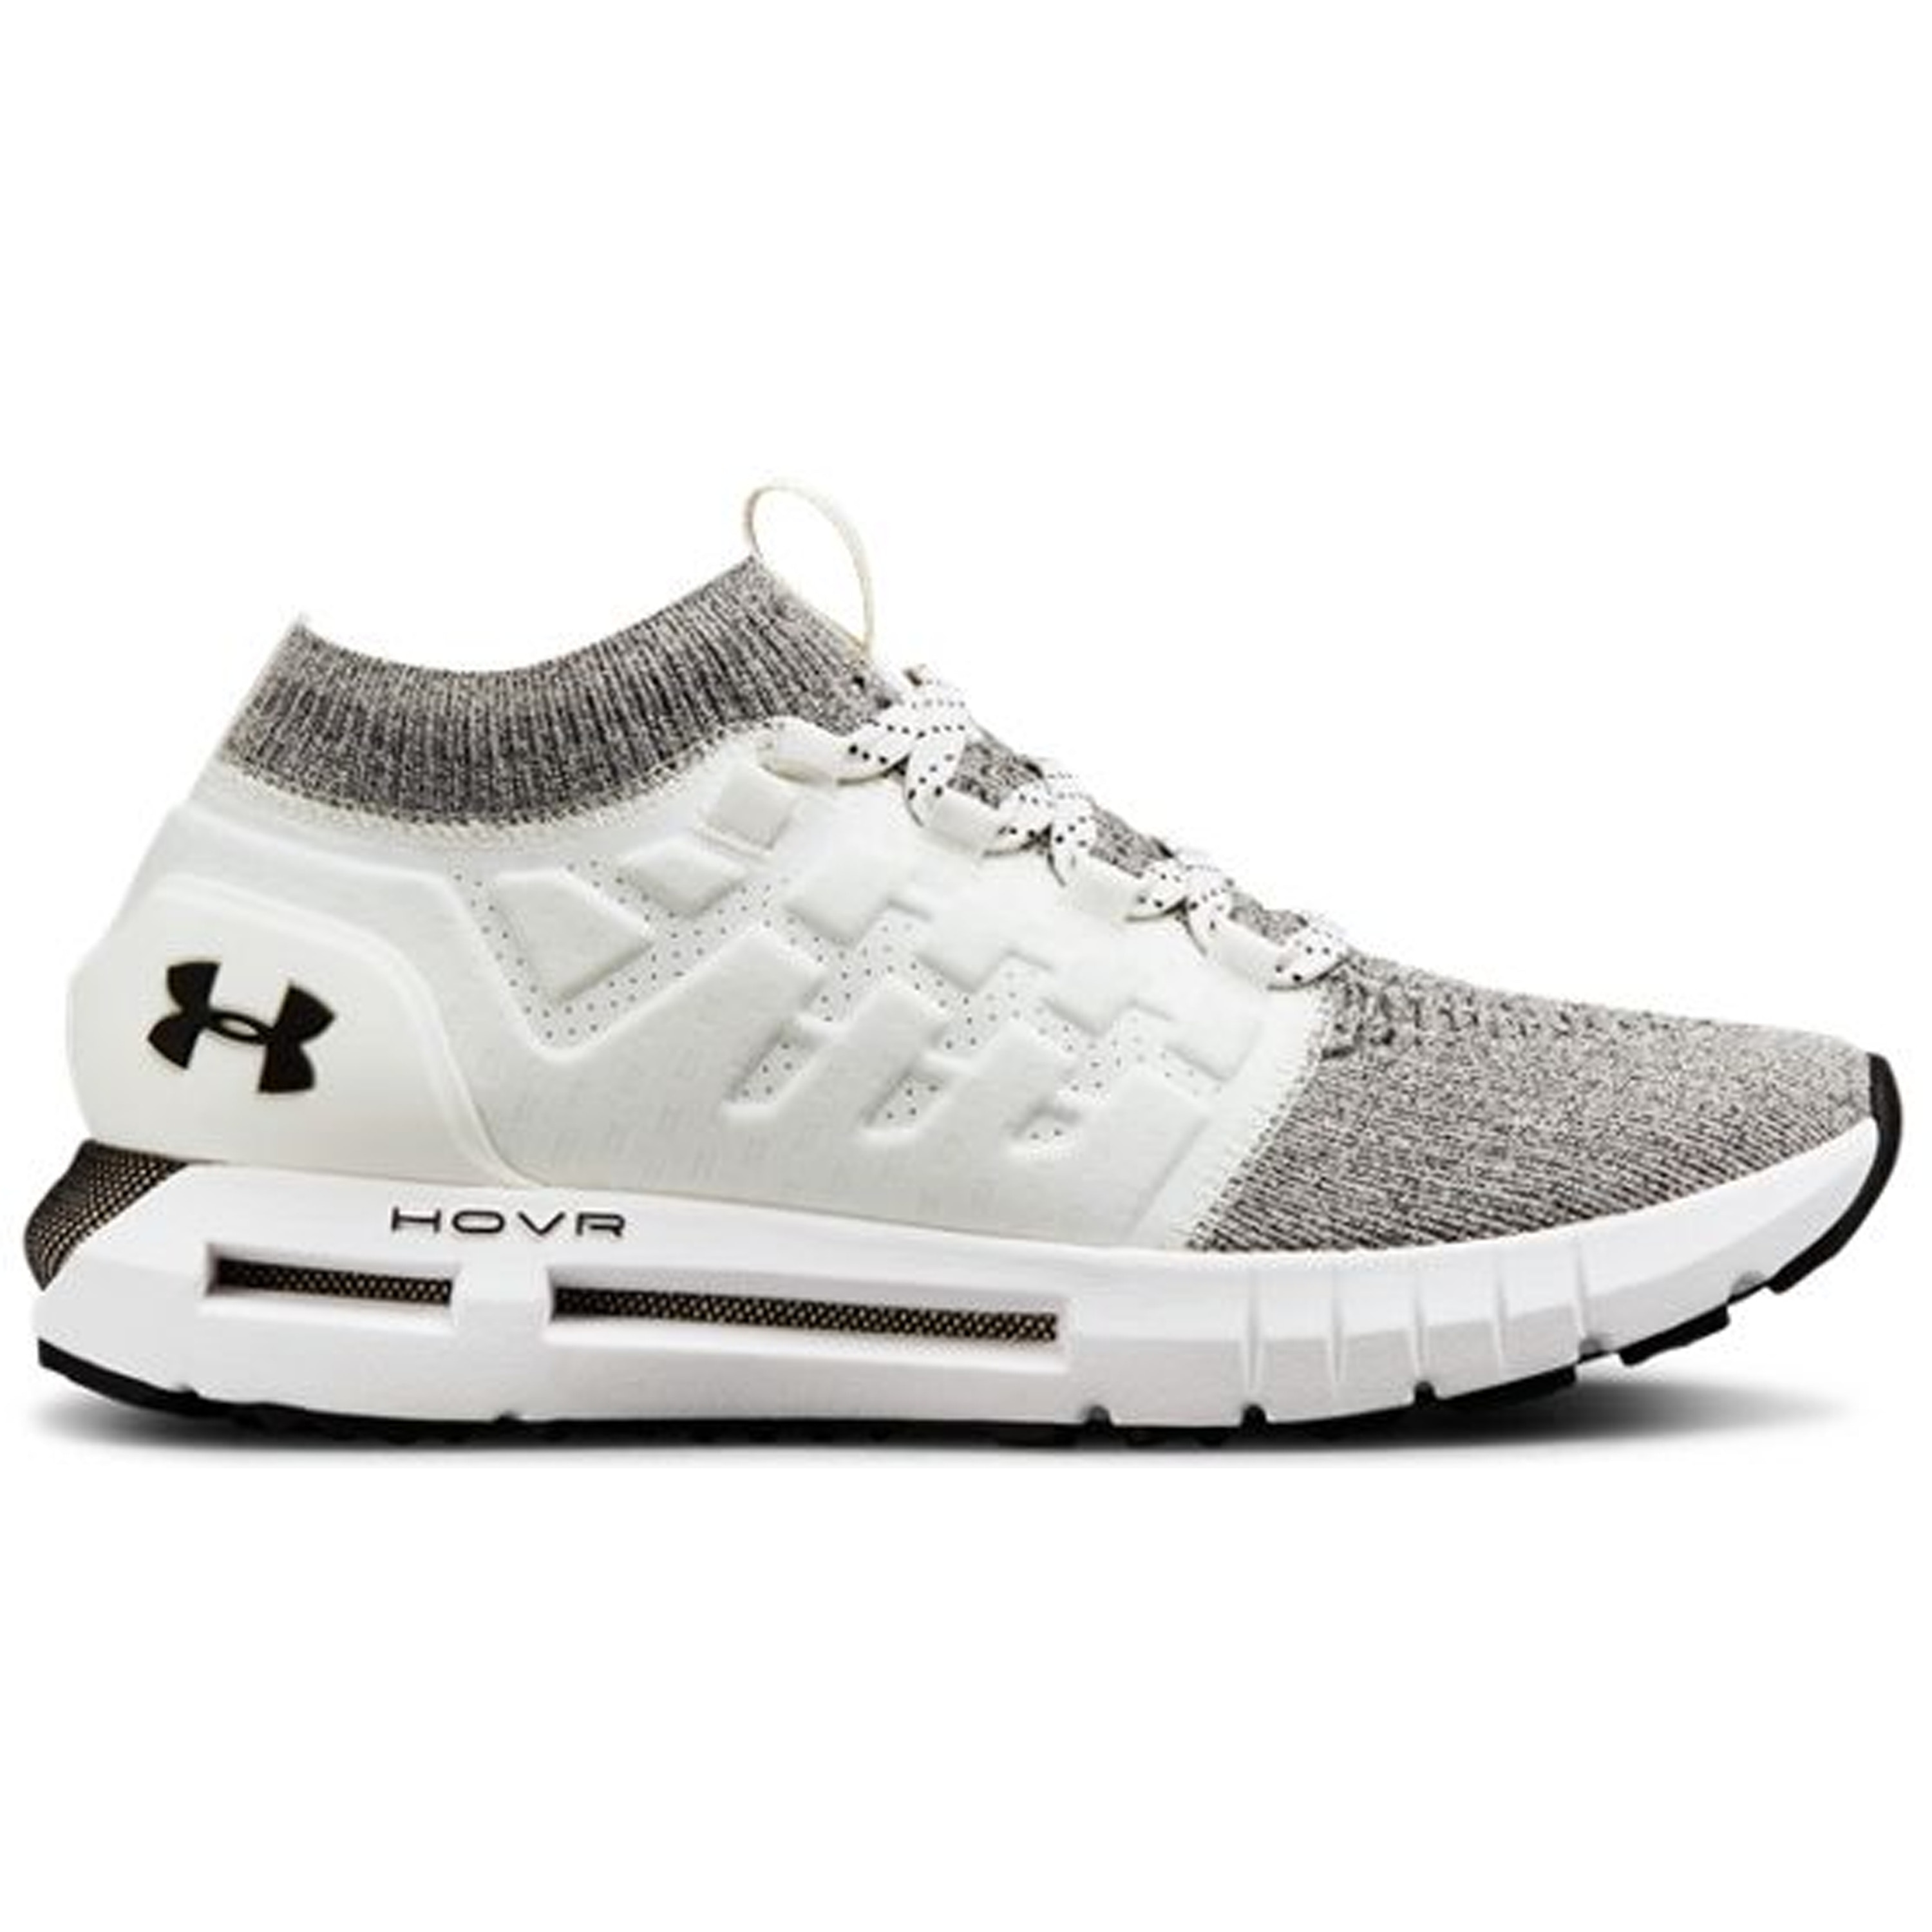 Under Armour HOVR Phantom White Black (3020972-108)